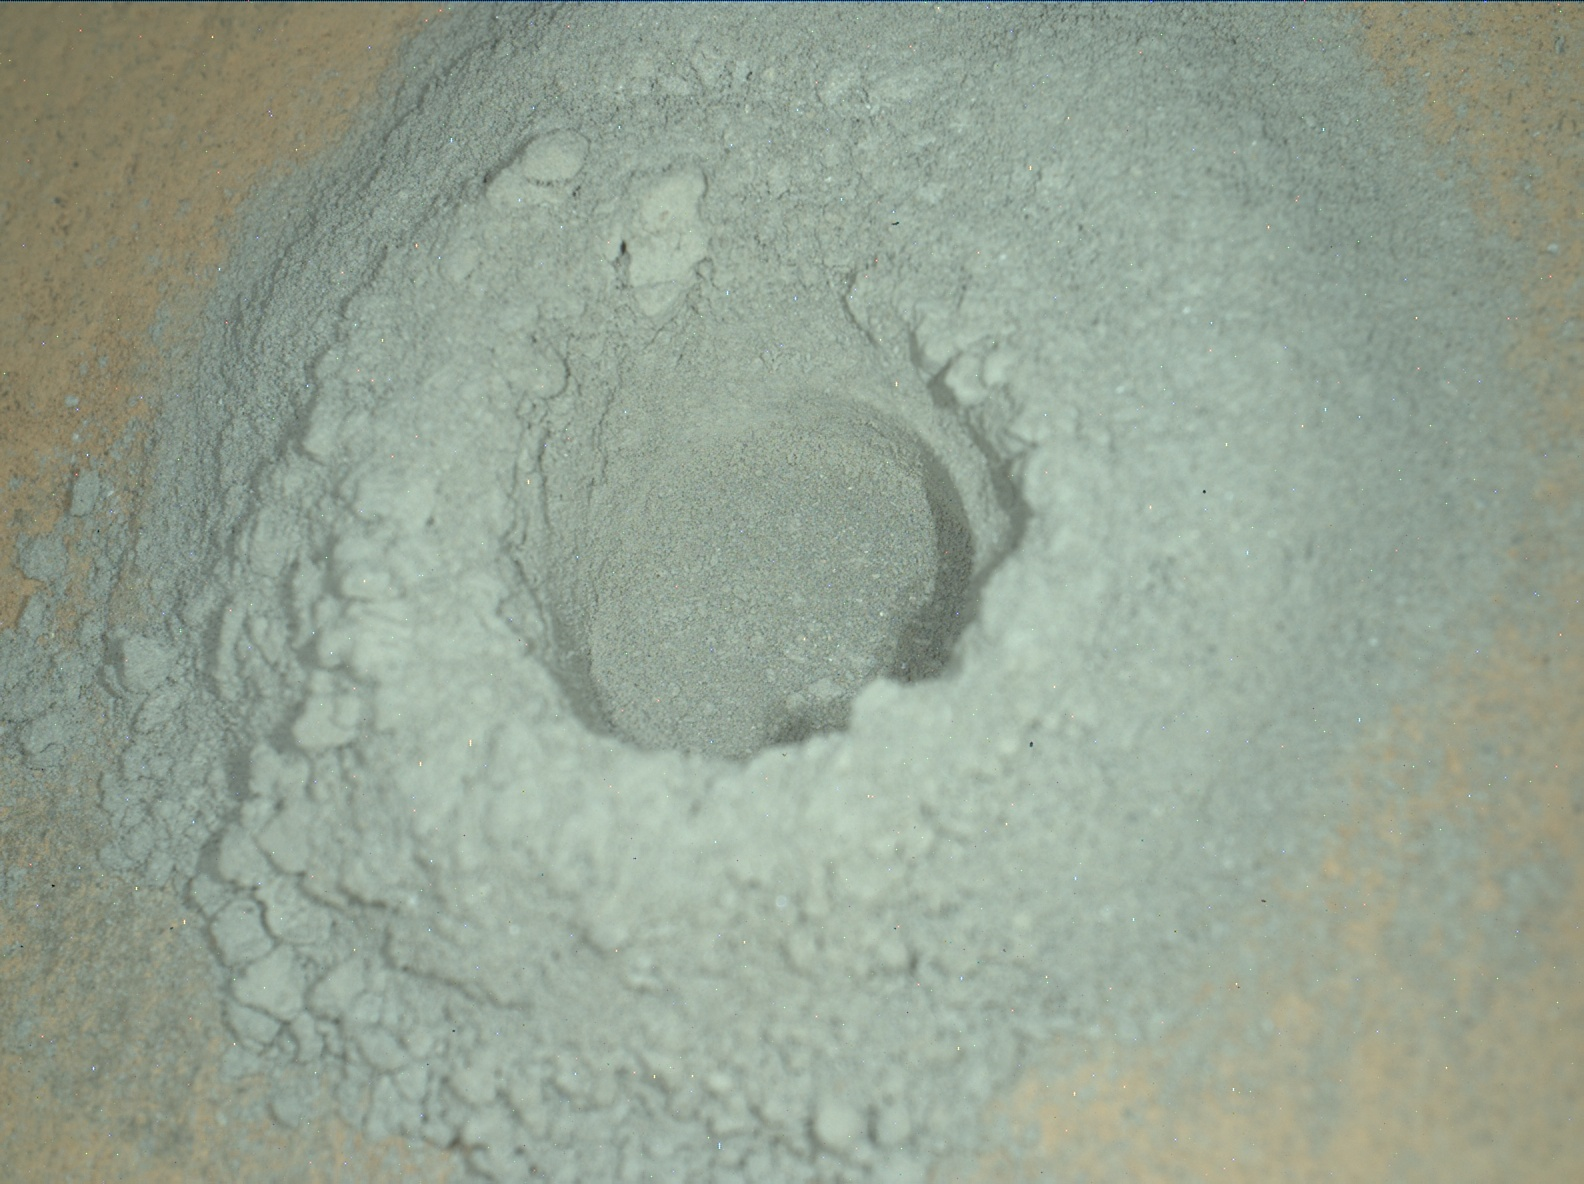 Nasa's Mars rover Curiosity acquired this image using its Mars Hand Lens Imager (MAHLI) on Sol 2727